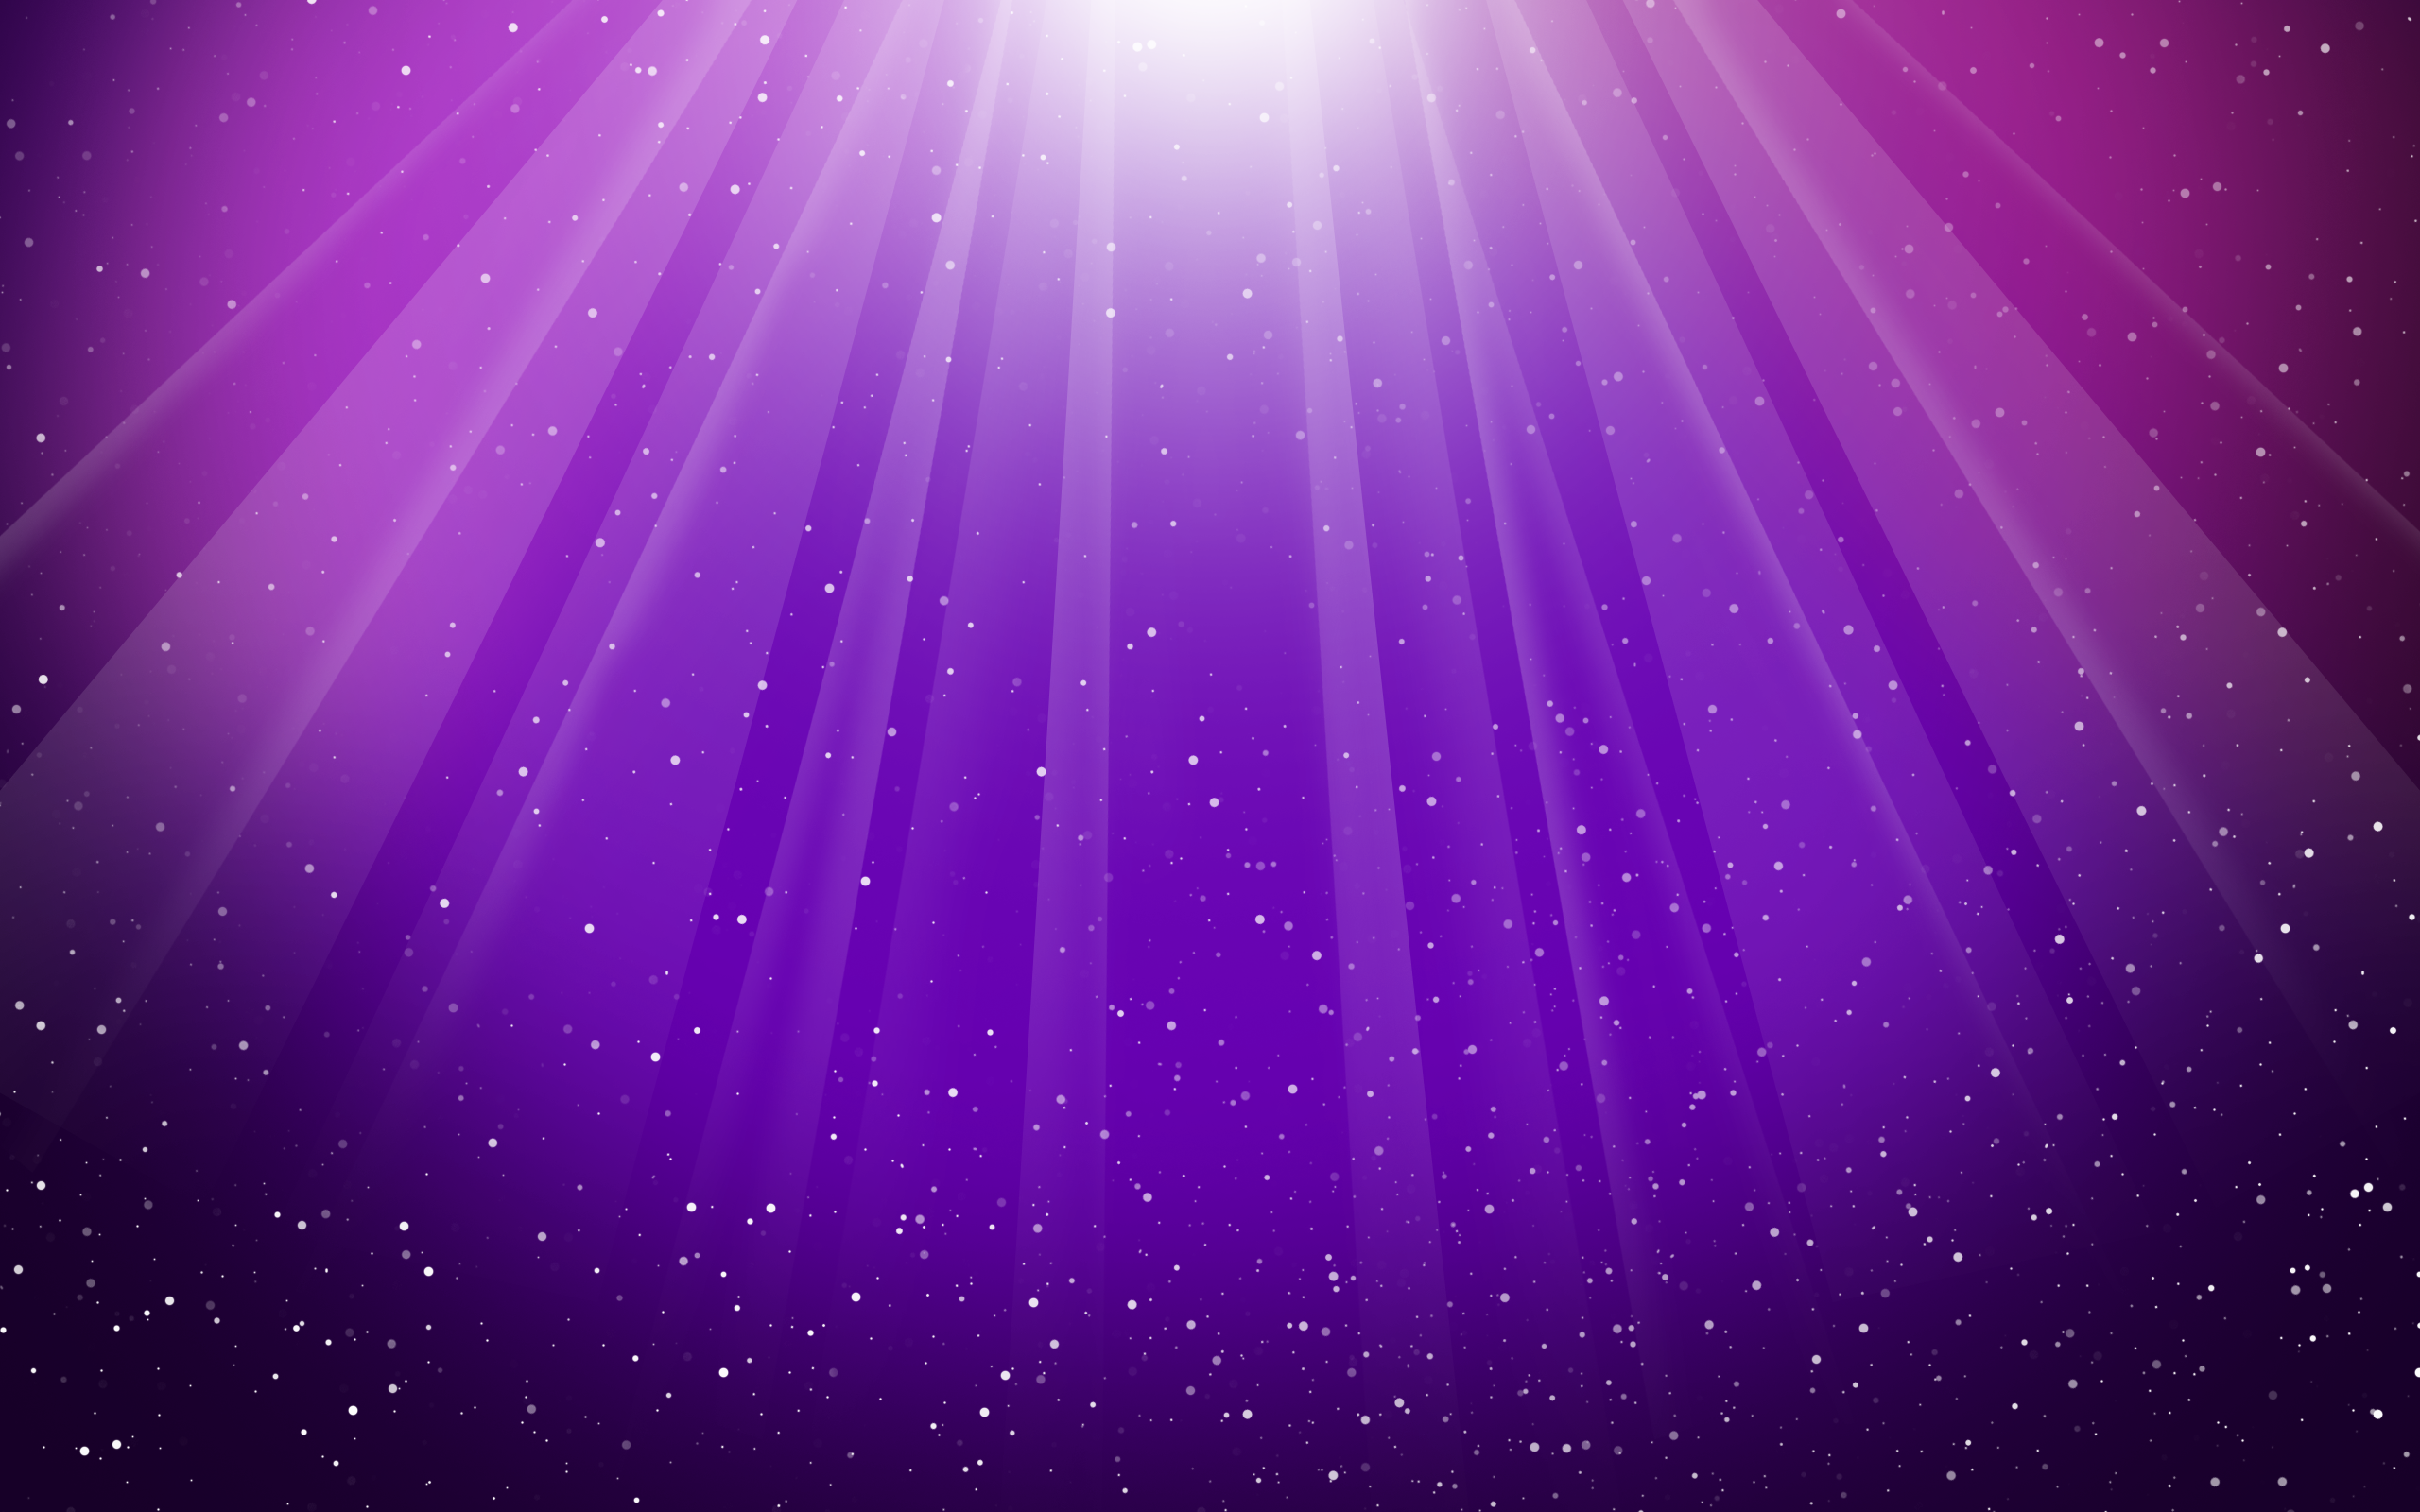 Purple wallpaper 1